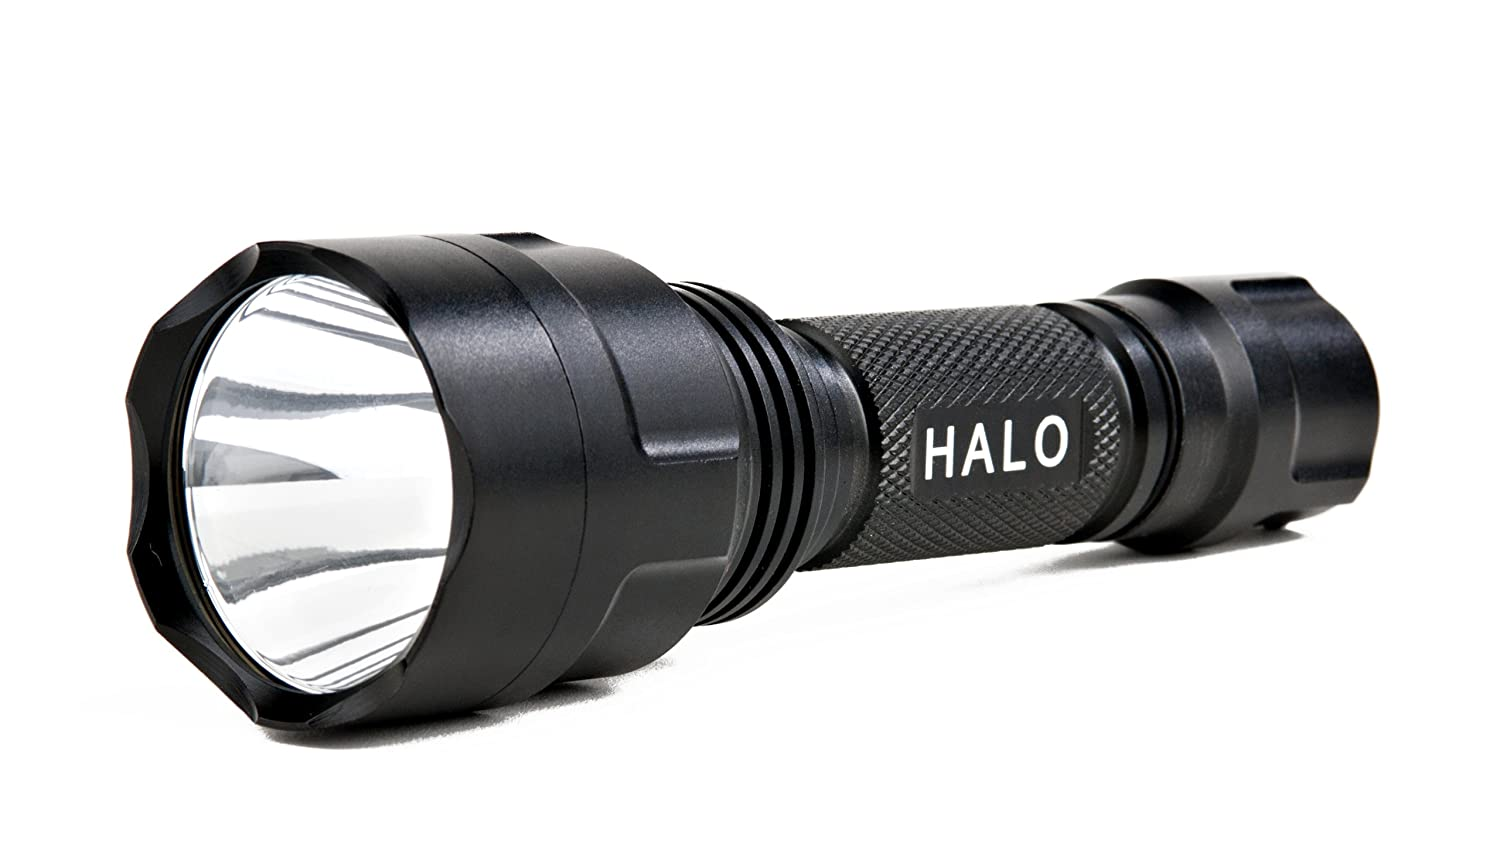 Guard Dog Security Rechargeable Tactical Flashlight Review ...